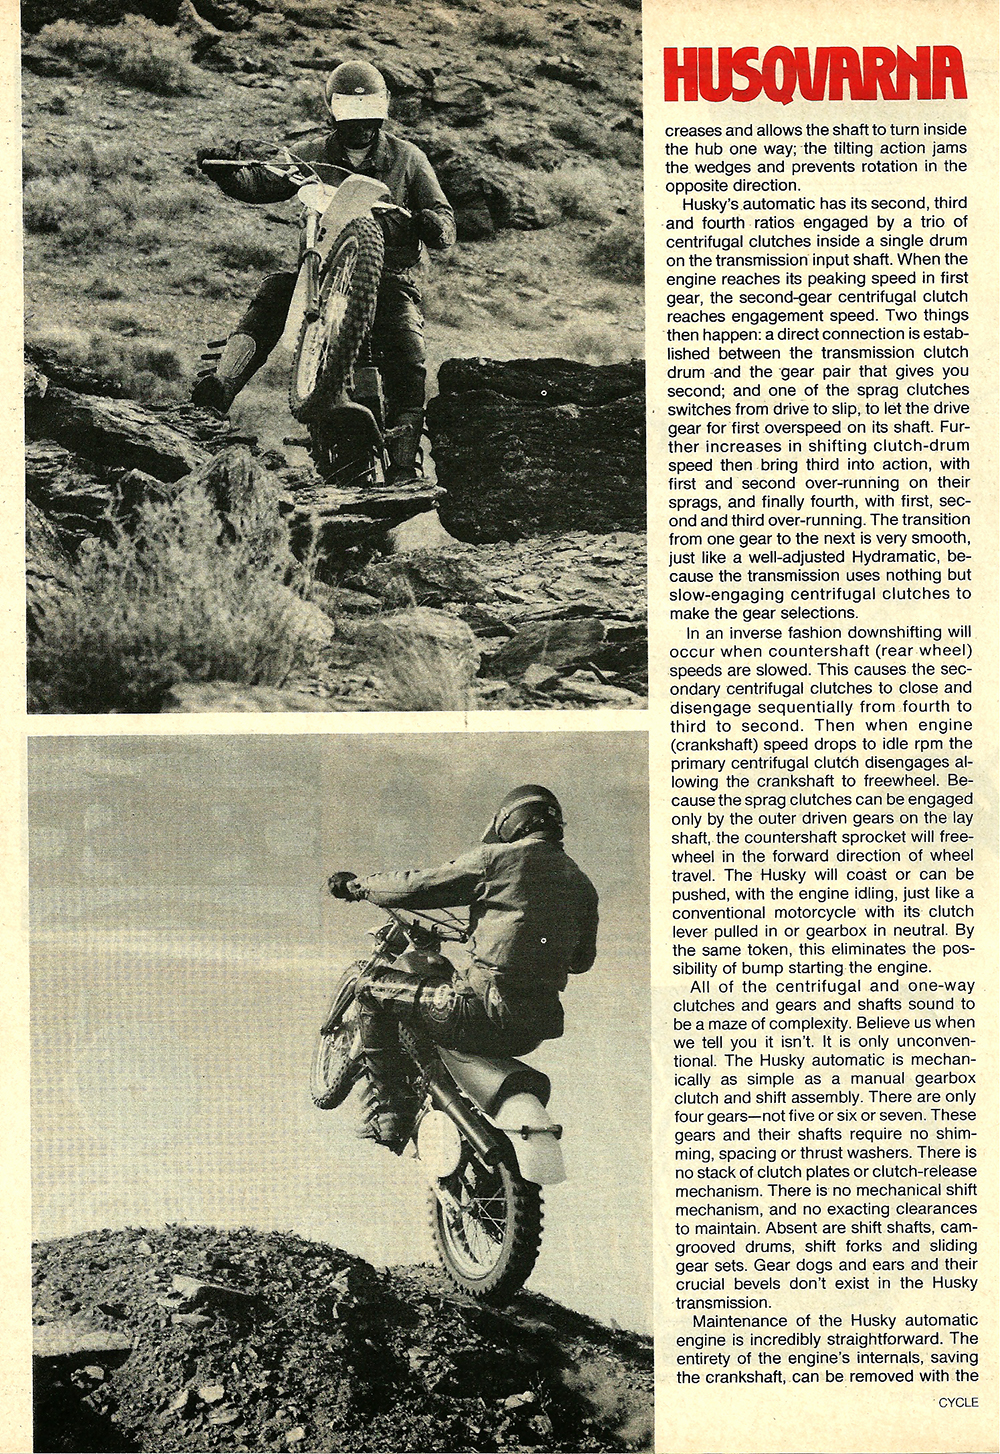 1977 Husqvarna Automatic 360 road test 5.jpg